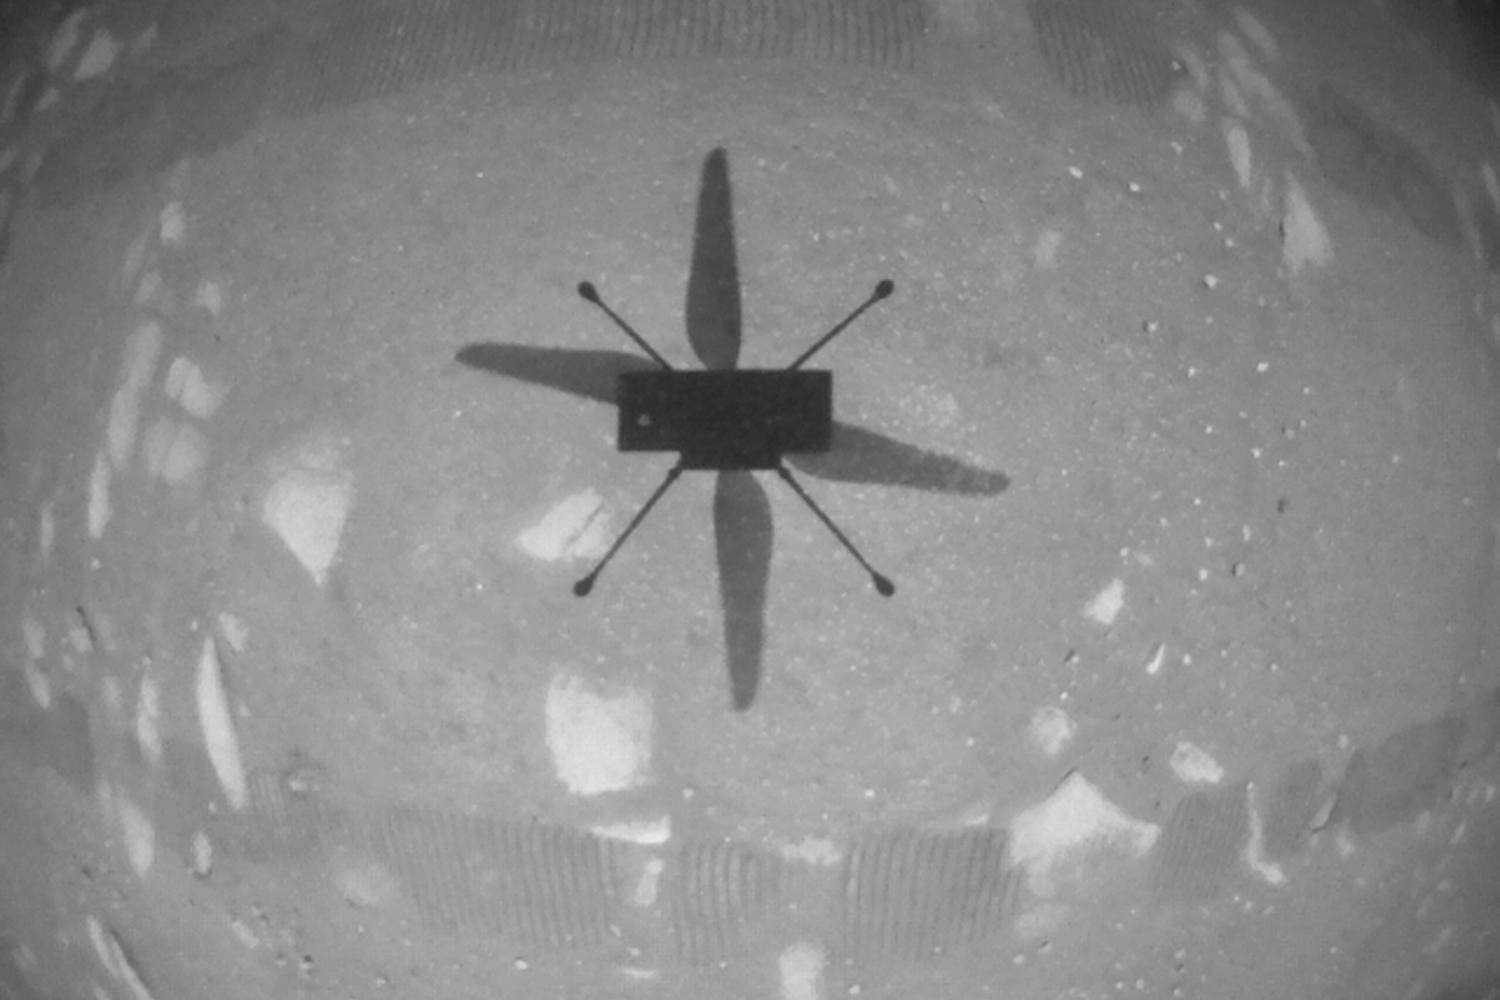 NASA's Ingenuity Mars helicopter took this shot while hovering over the Martian surface on April 19—the first instance of powered, controlled flight on another planet. NASA/JPL-Caltech via Getty Images